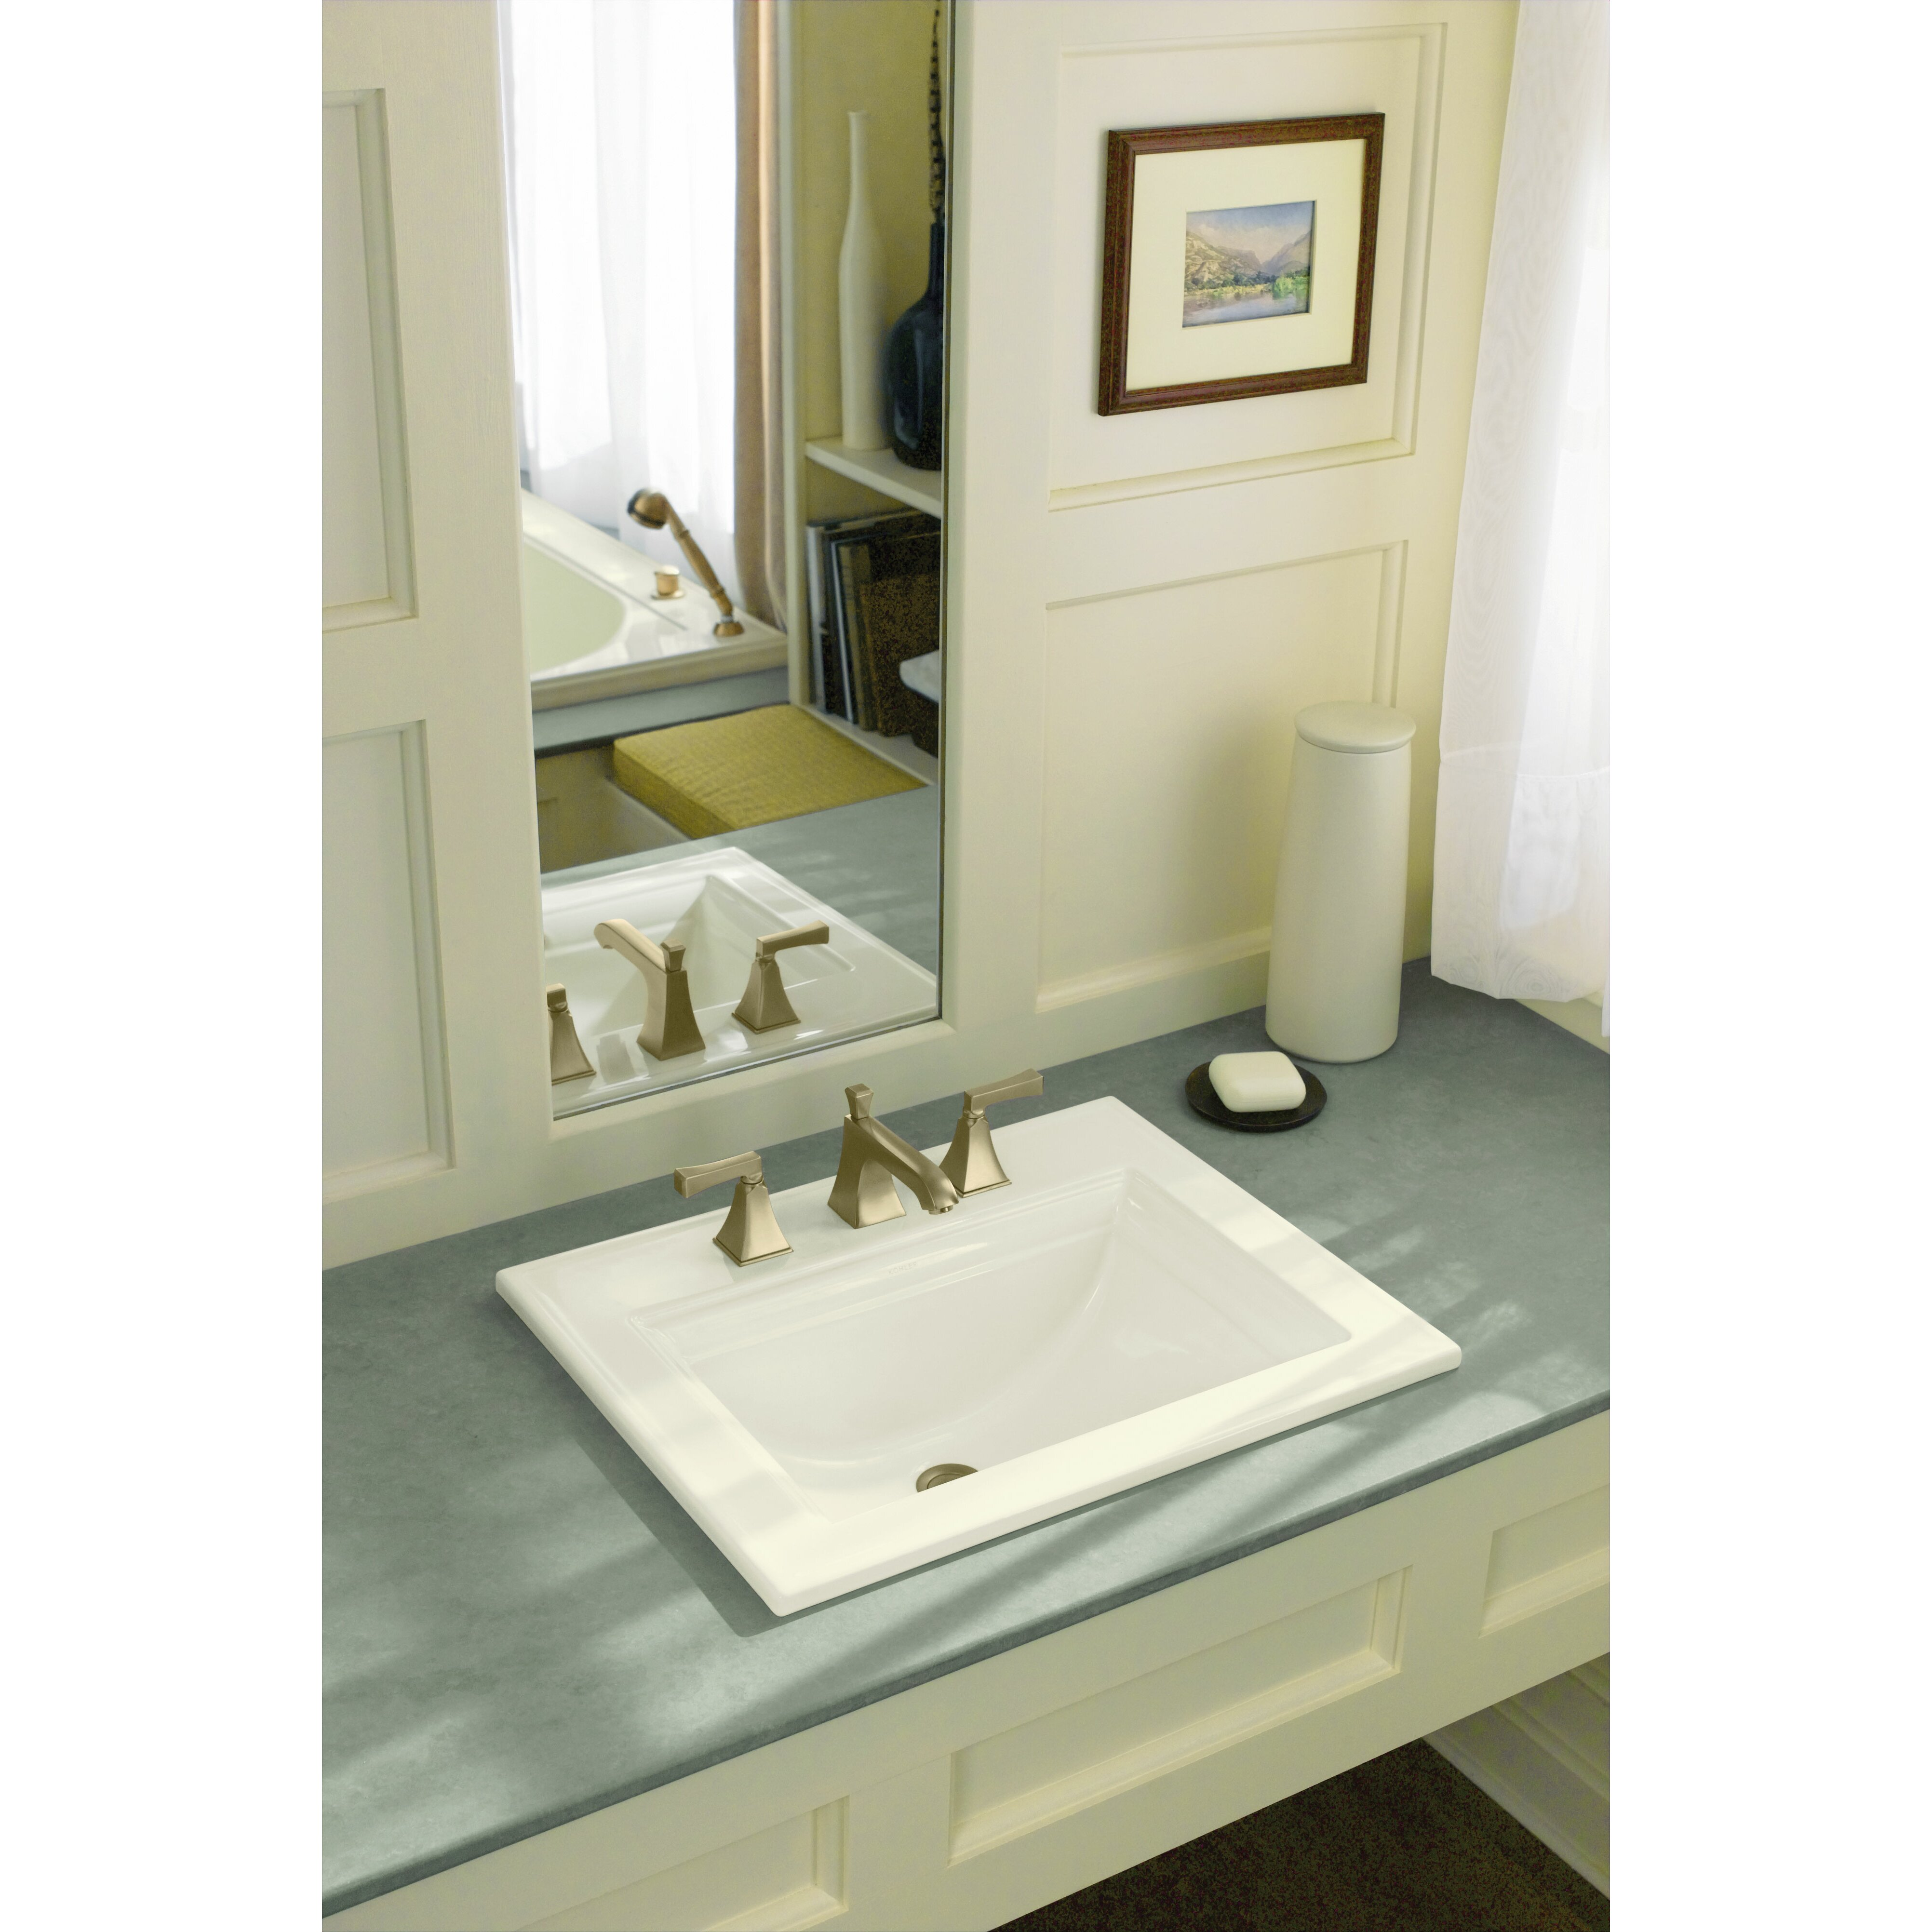 Bathroom Sinks Rectangular Drop In drop in bathroom sinks rectangular | my web value